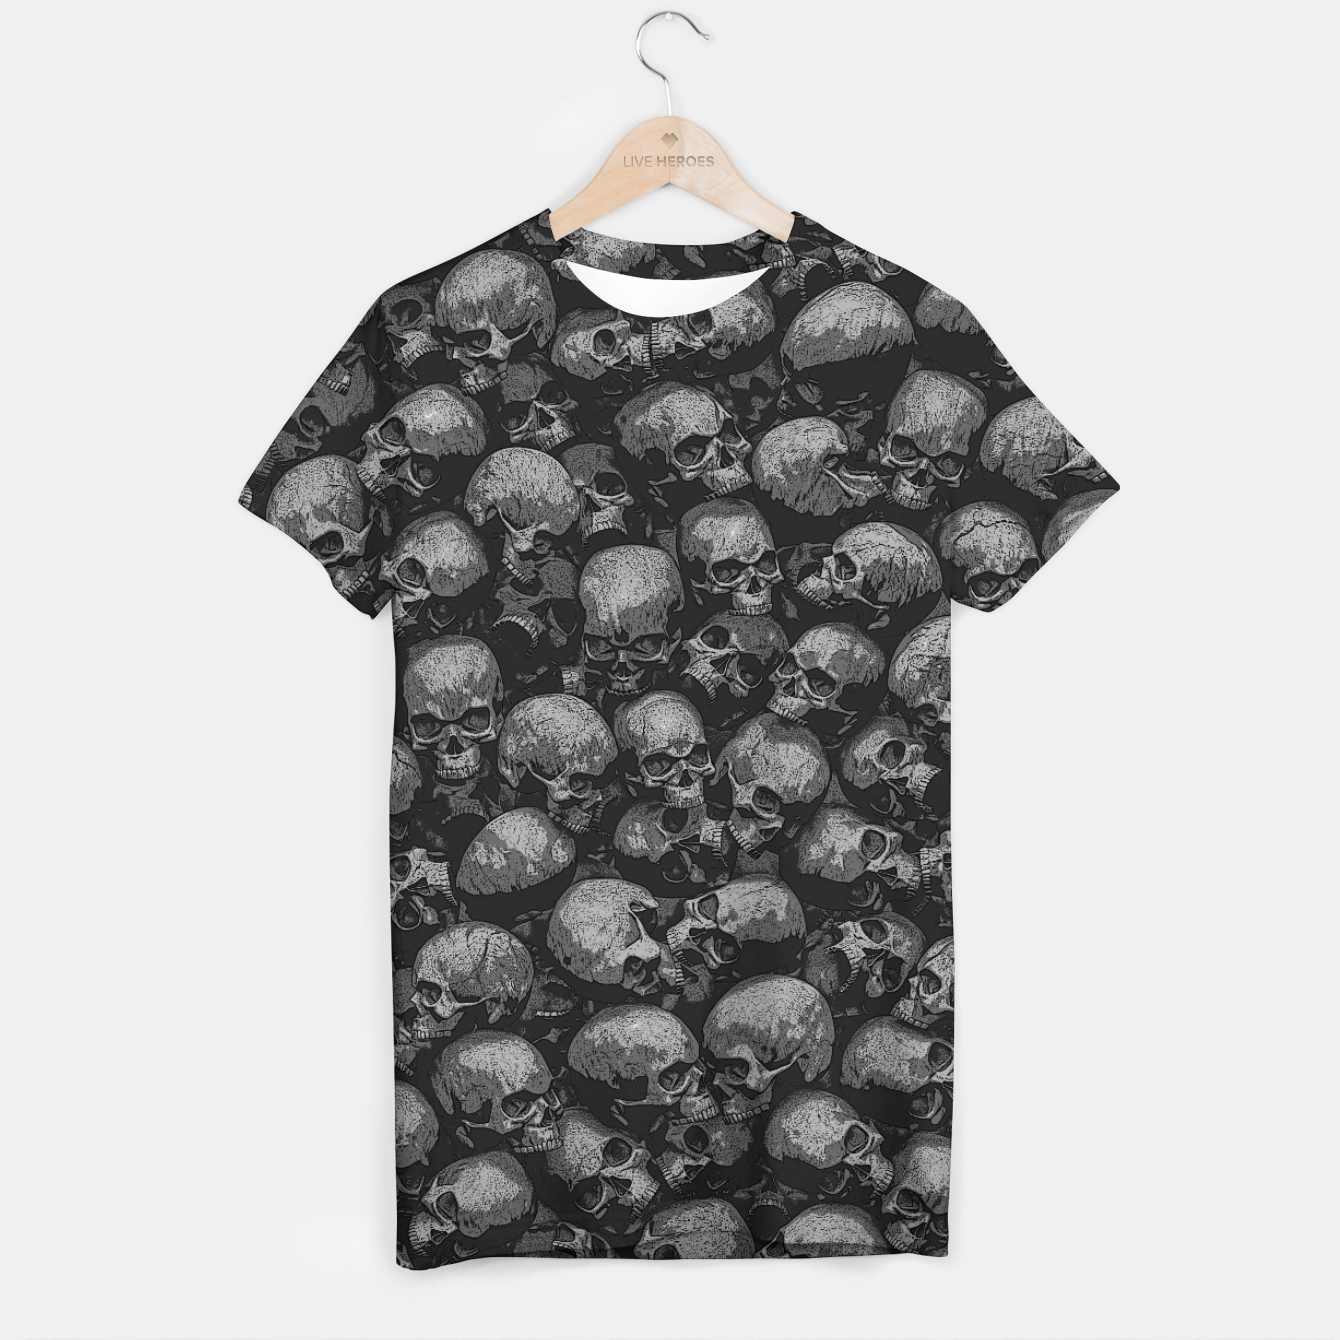 9a6259e4 Totally Gothic T-shirt, Live Heroes